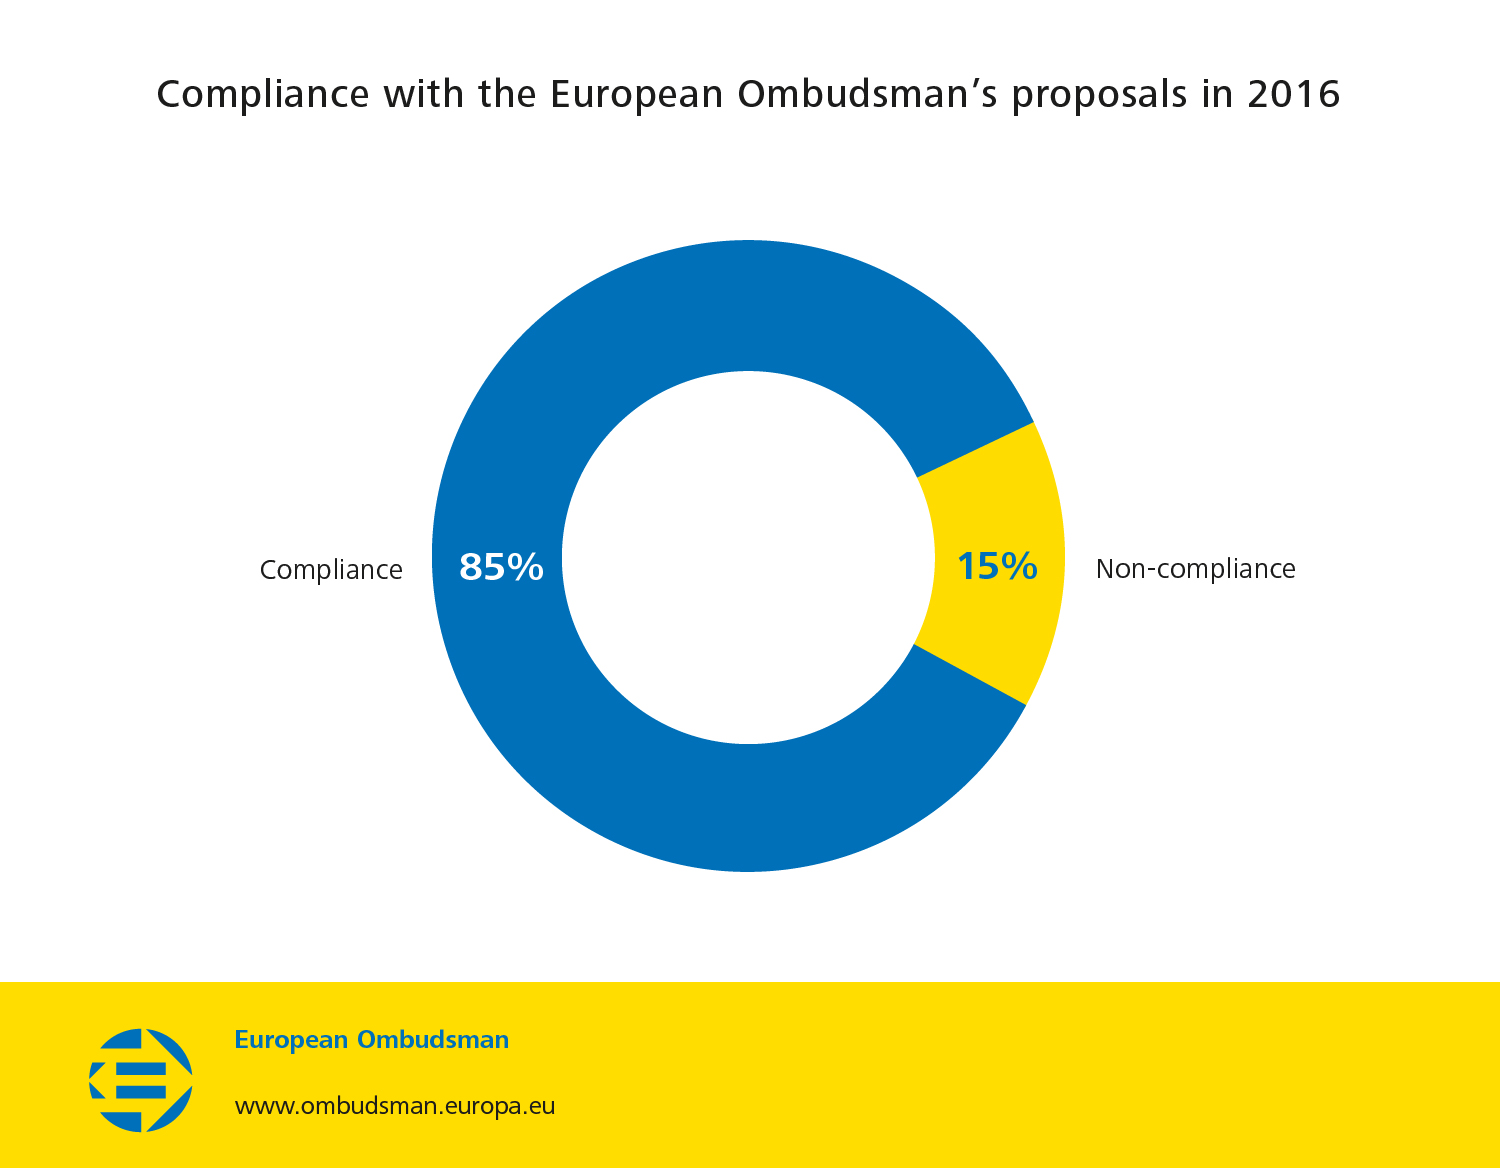 Compliance with the European Ombudsman's proposals in 2016